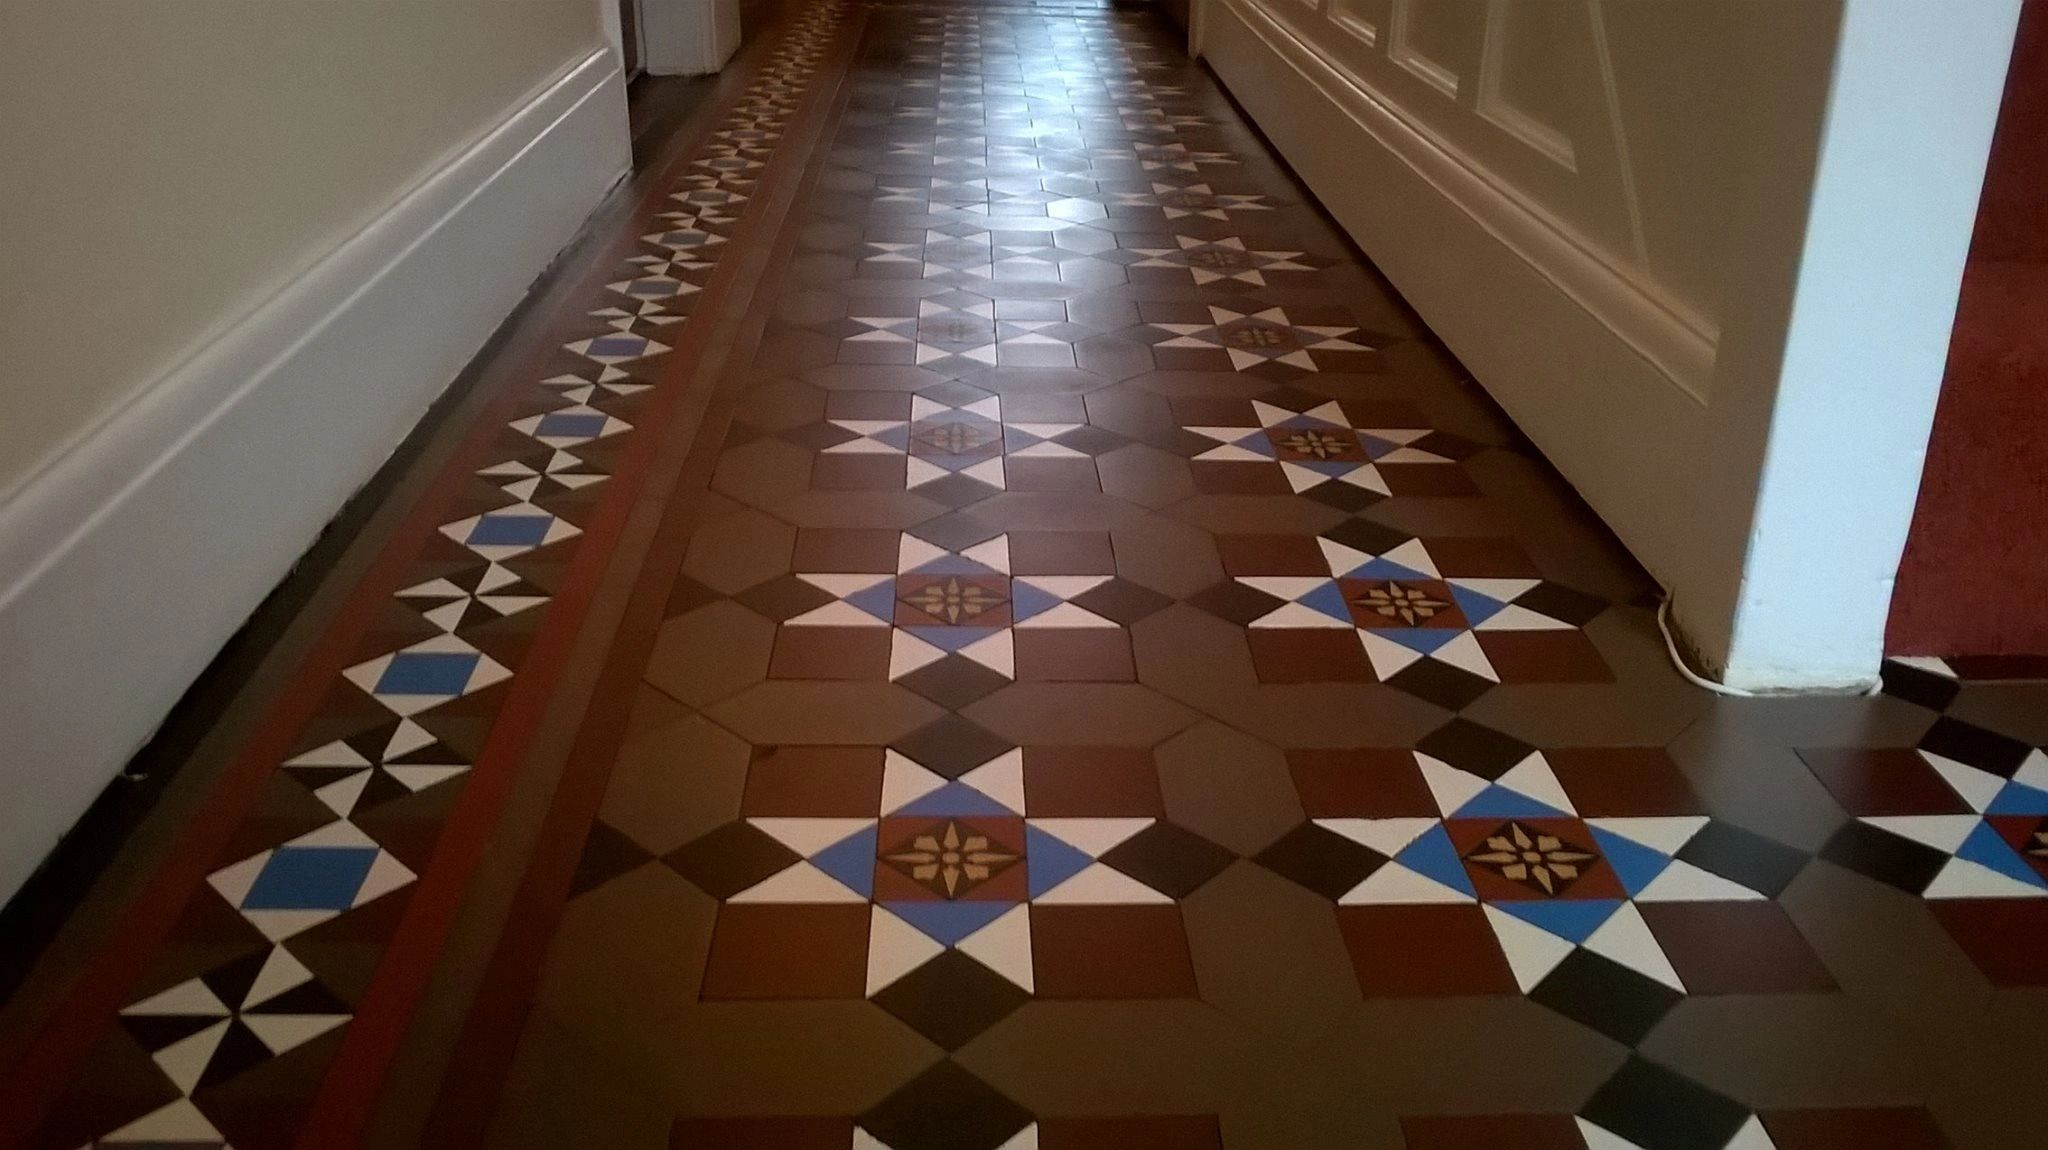 Minton floor cleaning, Victorian floor cleaning, Edwardian floor cleaning, Quarry floor cleaning